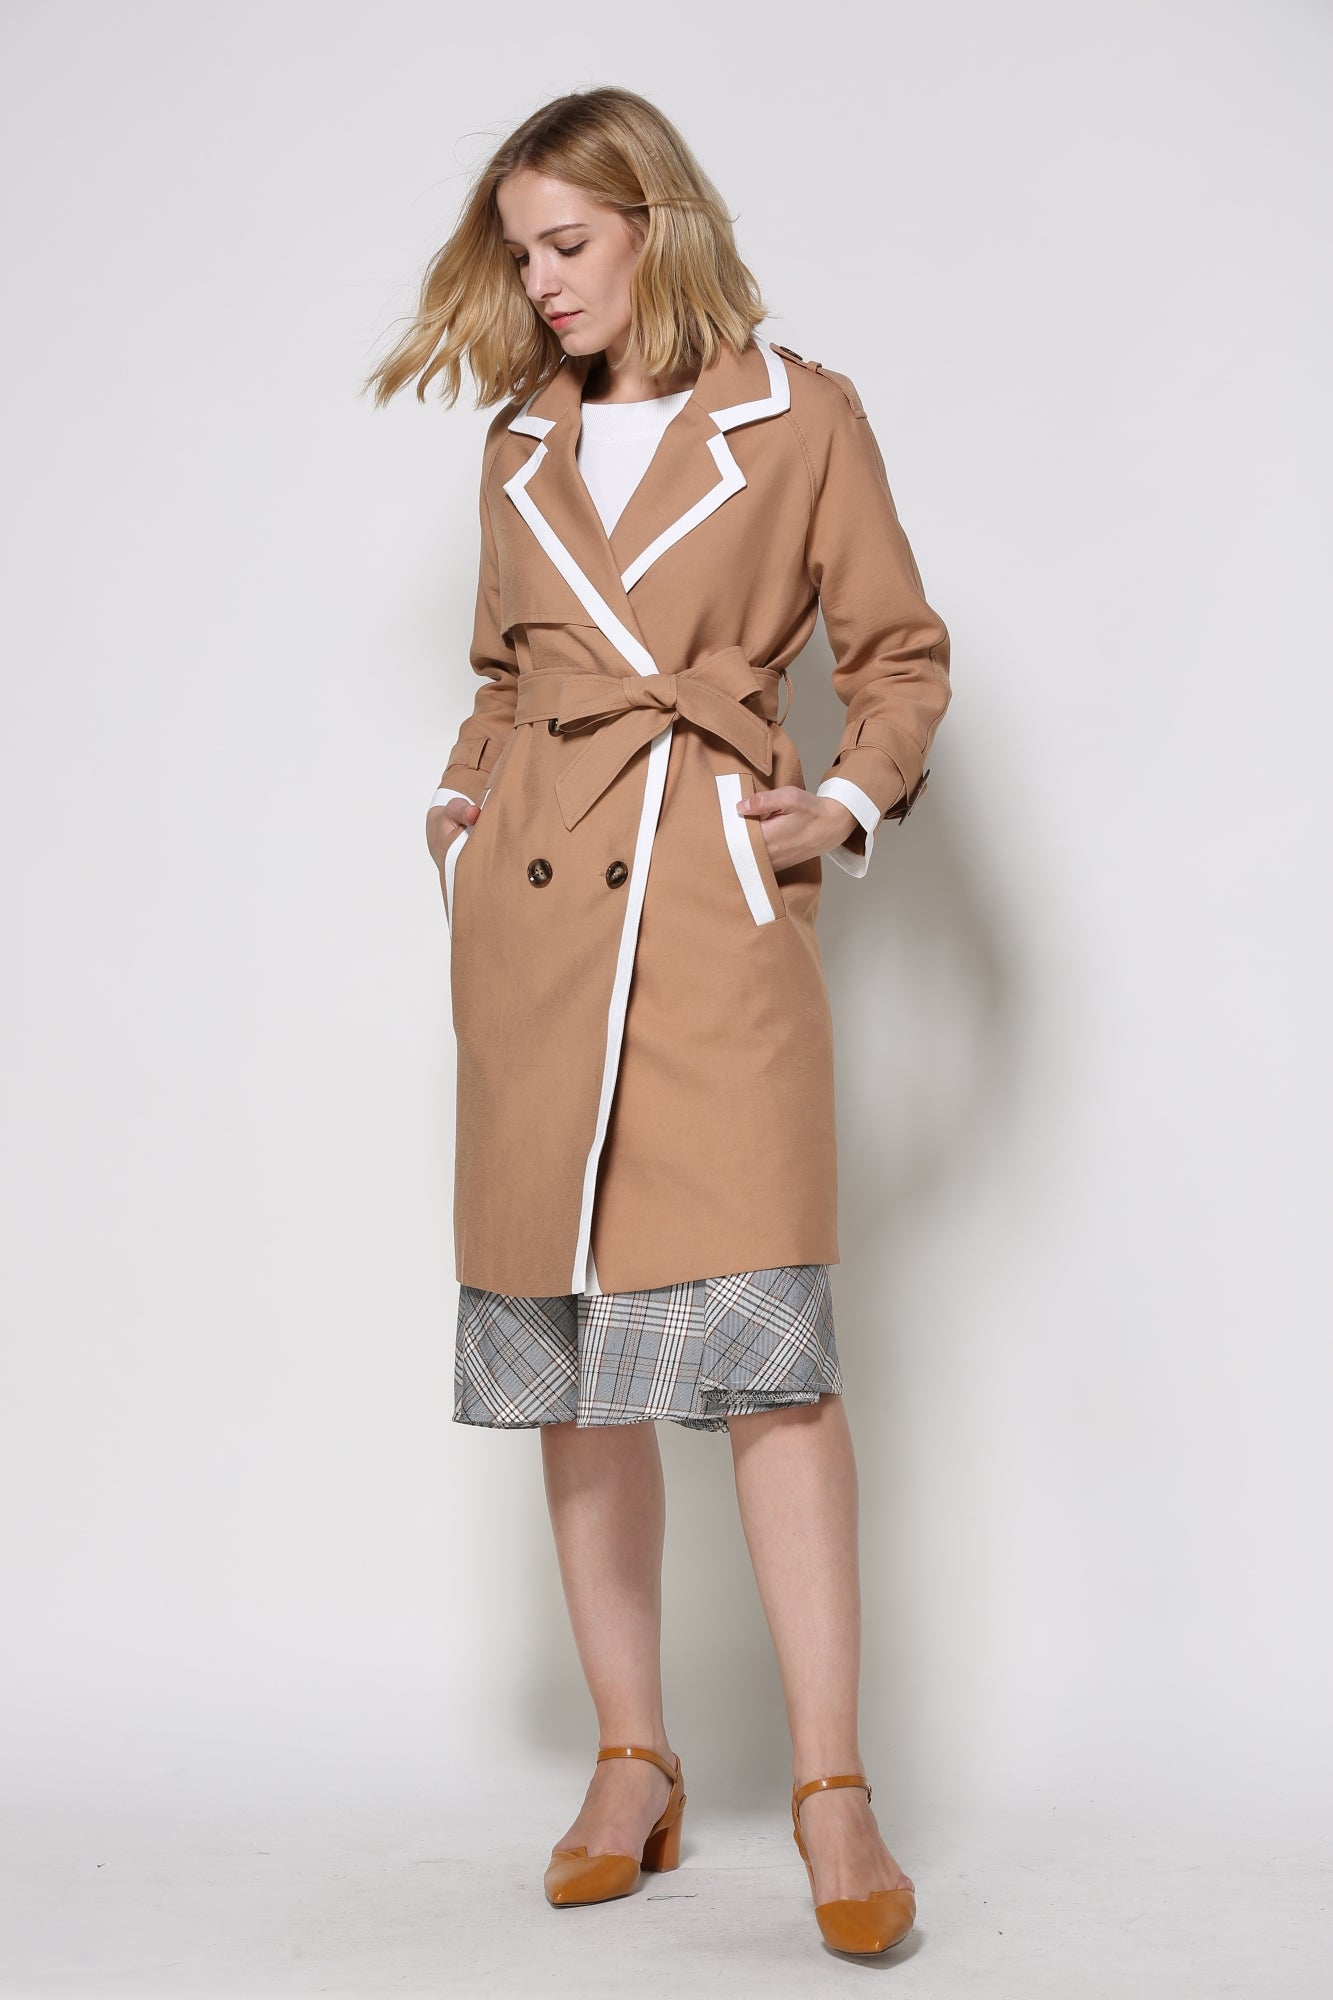 Tangerine Trench Coat With White Trim